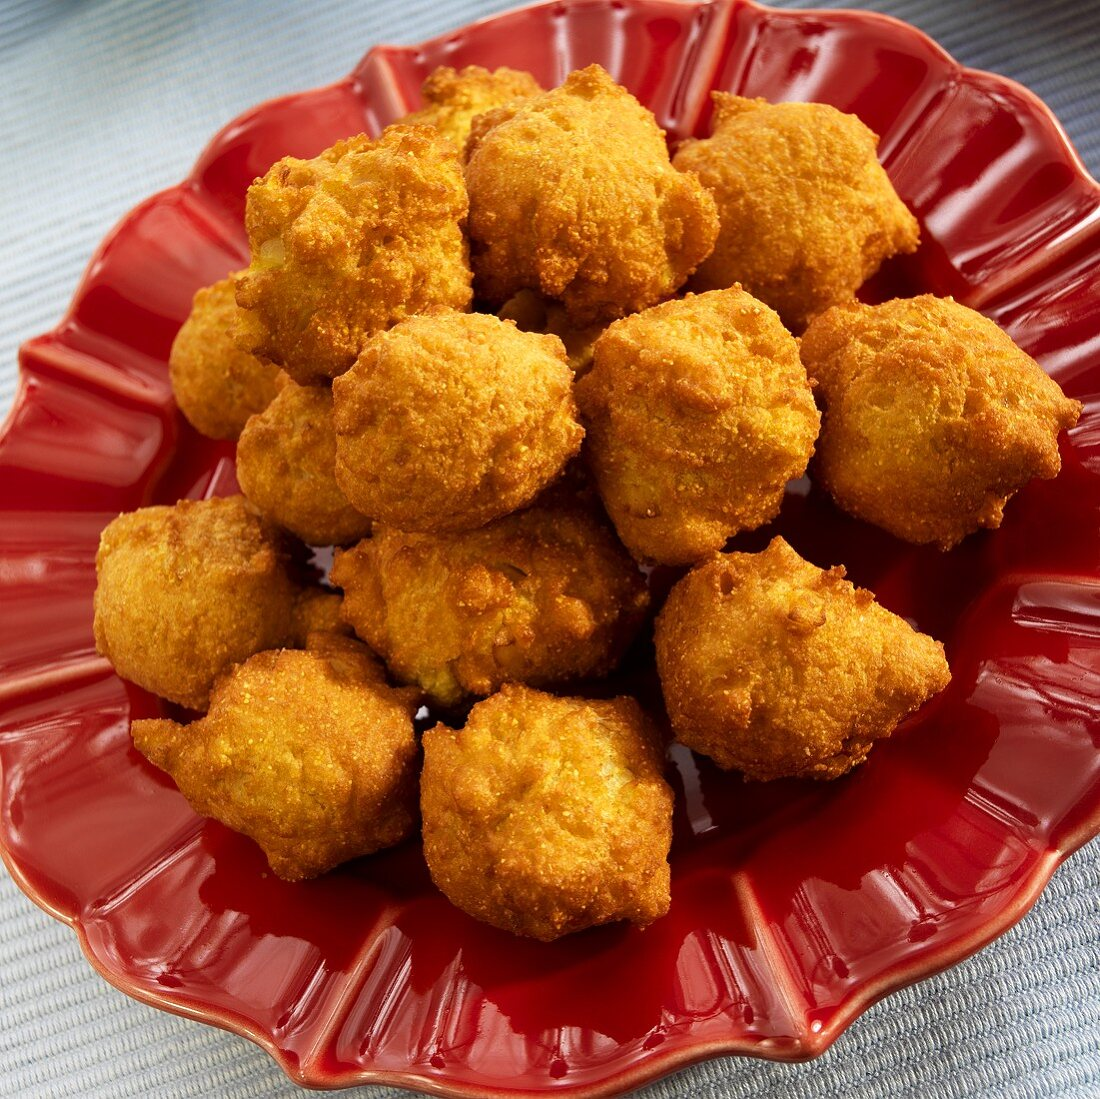 Hush Puppies on a Red Plate